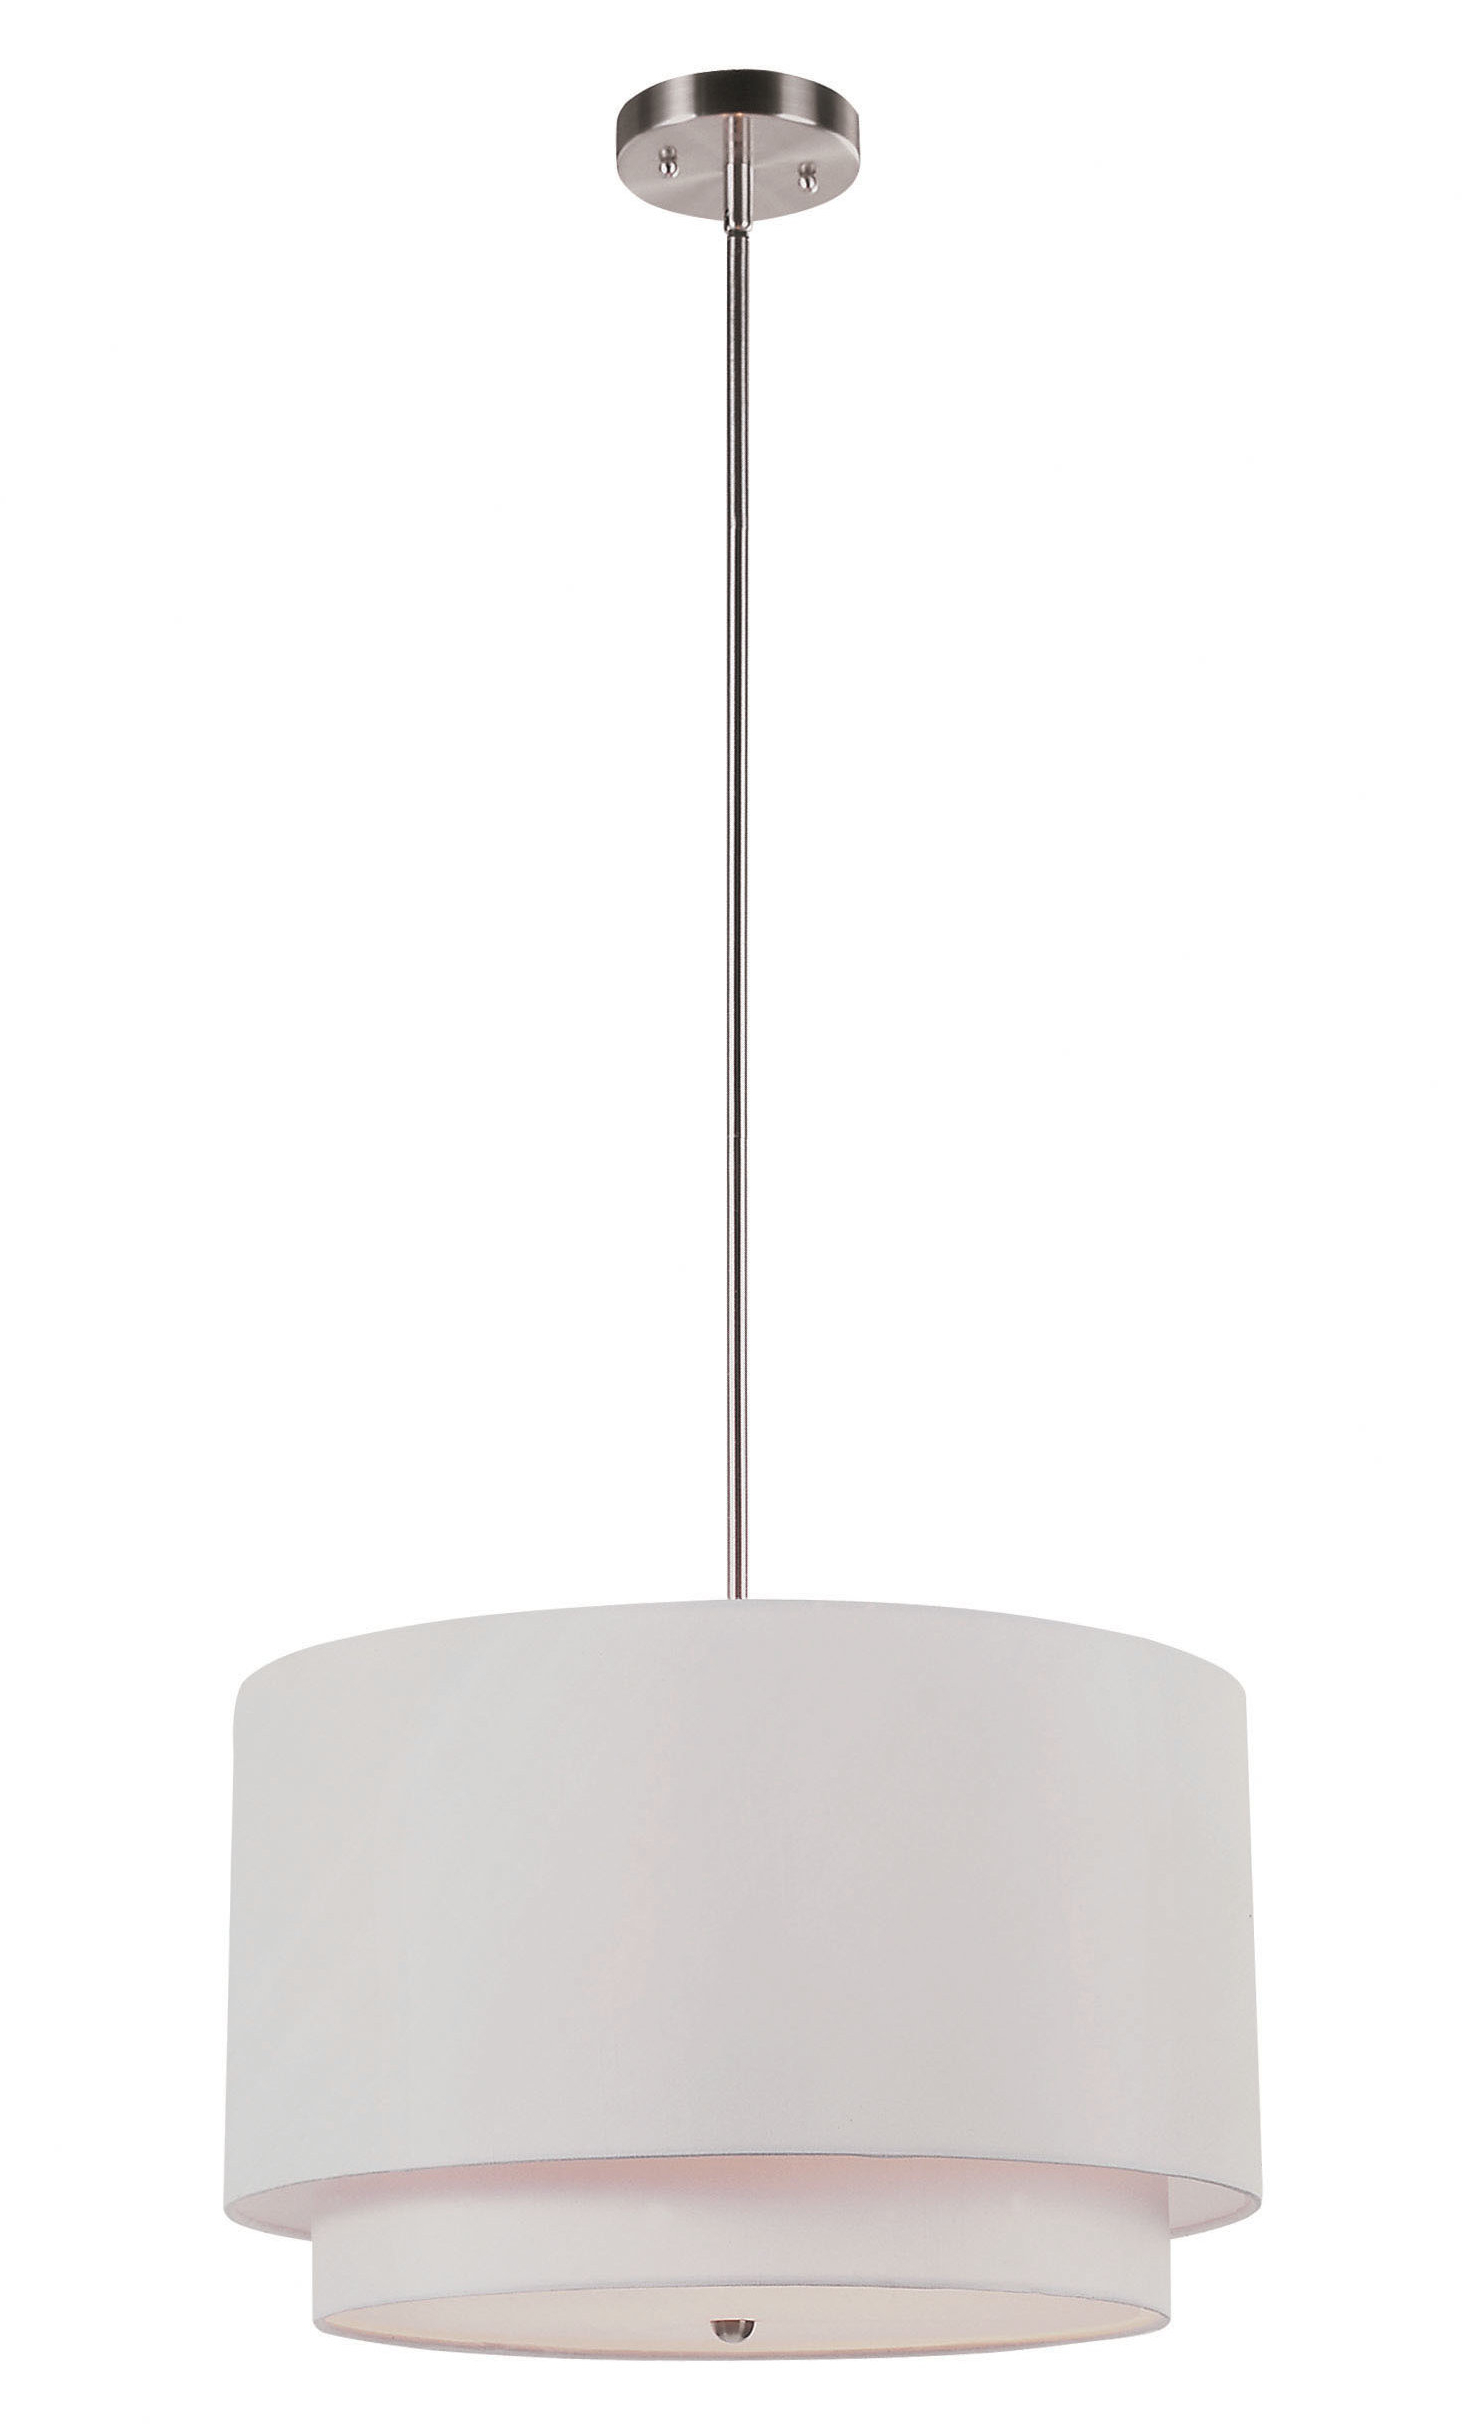 2020 Kasey 3 Light Single Drum Pendants Pertaining To Friedland 3 Light Drum Tiered Pendant (View 1 of 20)